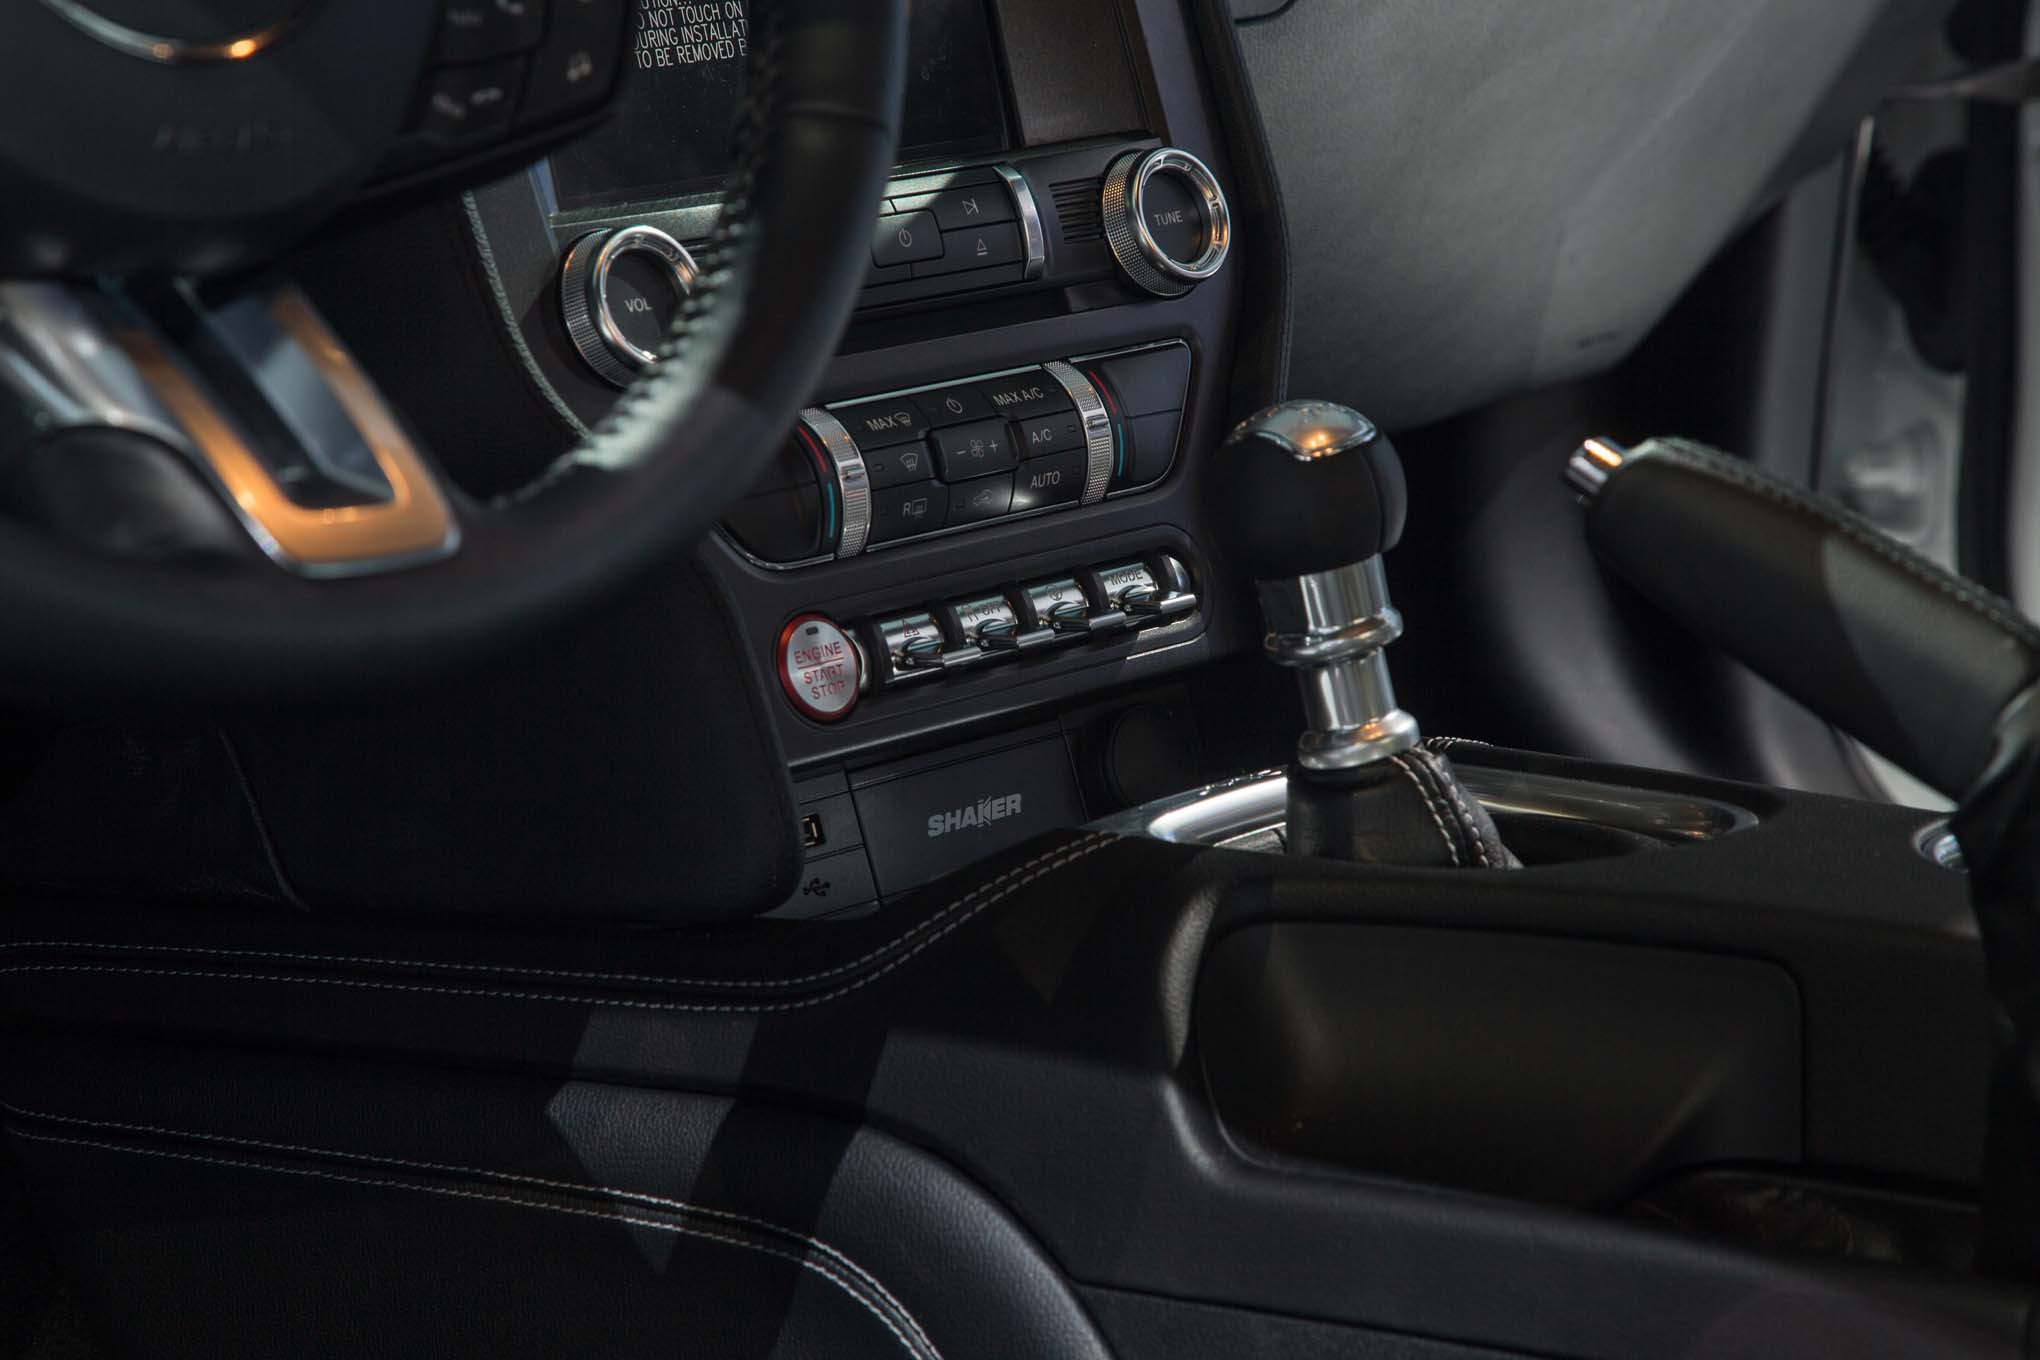 2018-Ford-Mustang-GT-gear-knob